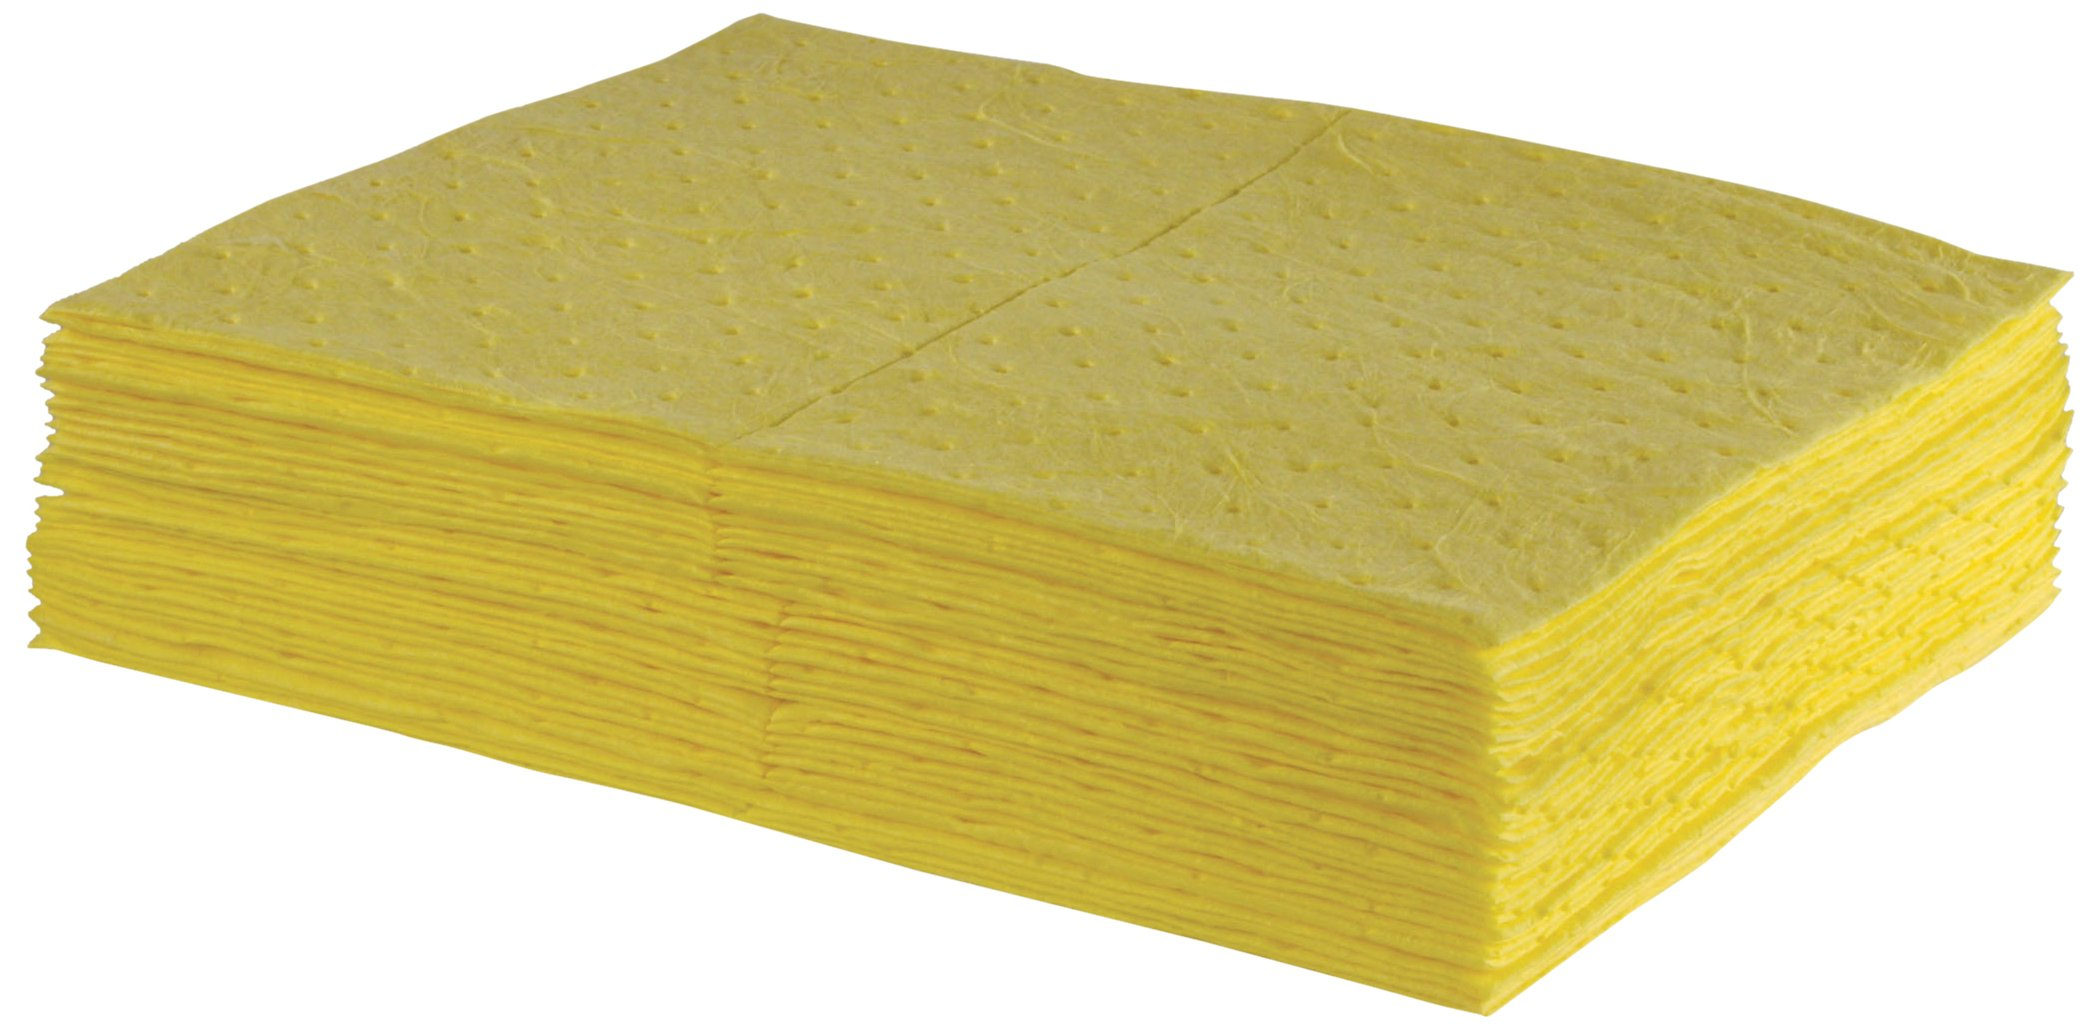 ESP 2MBYPB Polypropylene Medium Weight Meltblown Absorbent Sonic Bonded HazMat Pad, 20 Gallons Oil and 13 Gallons Water Absorbency, 18'' Length X 15'' Width, Yellow (100 per Bale) by ESP